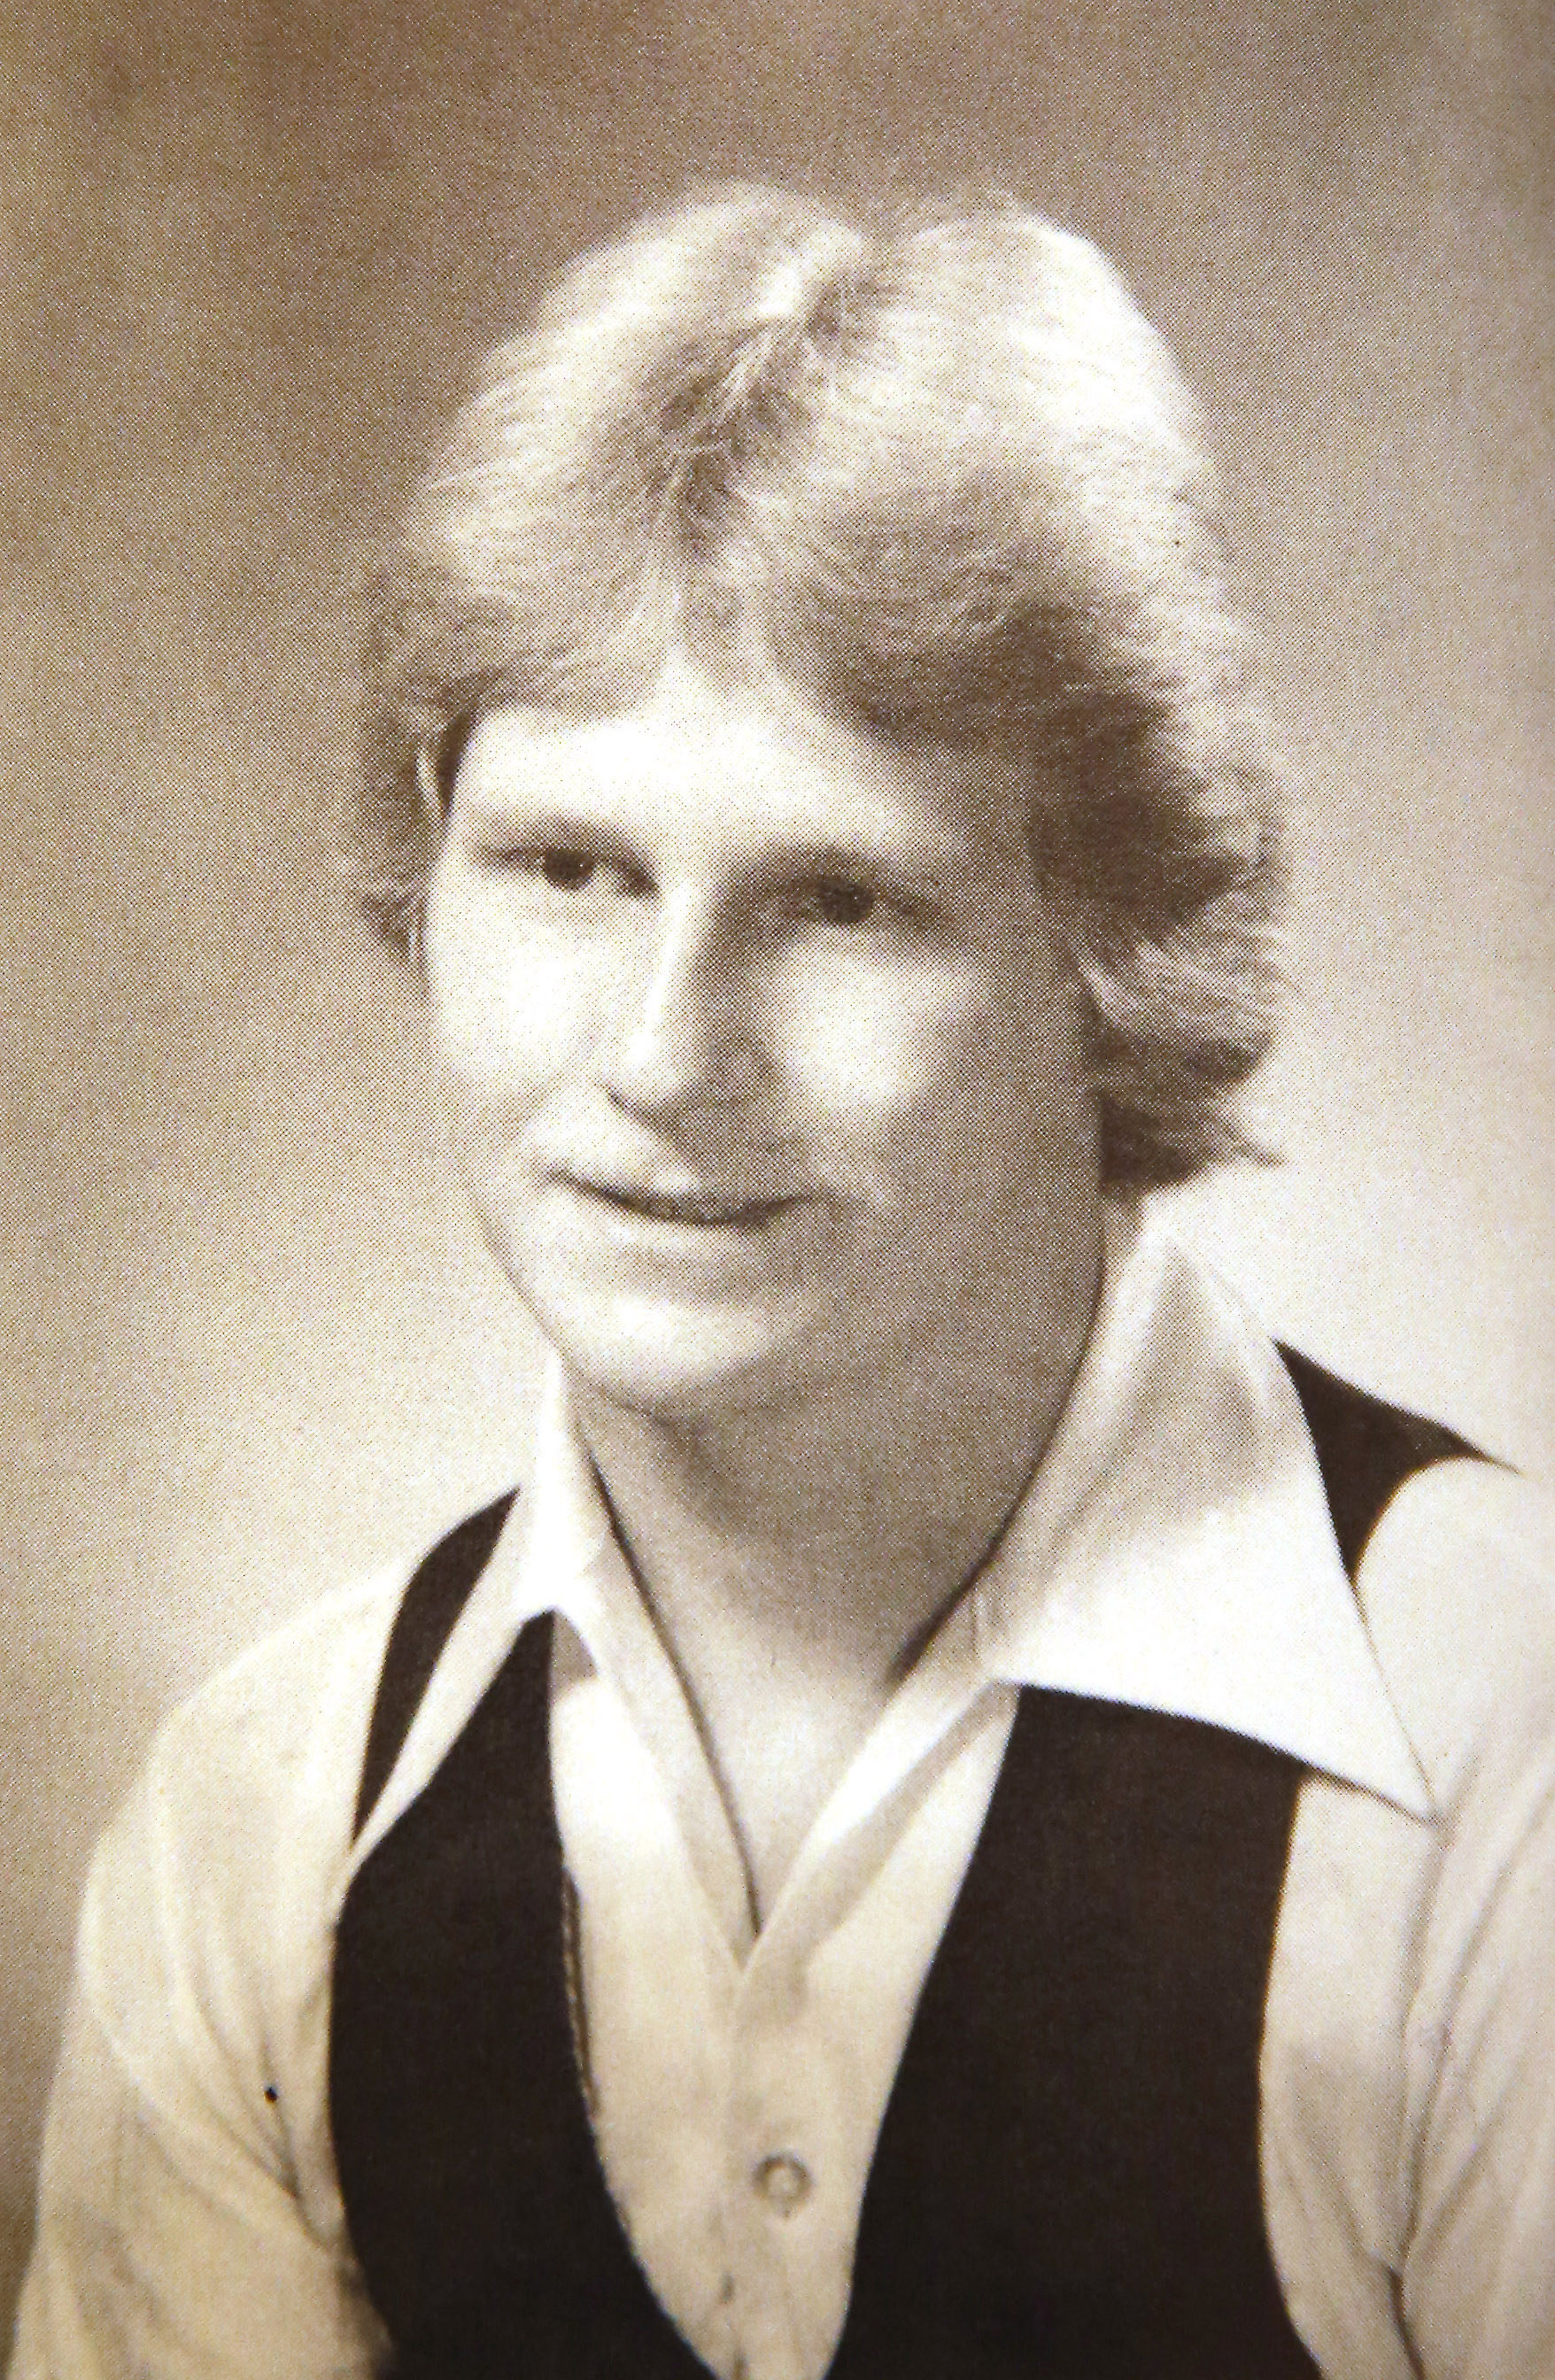 A photo of James Adamski from the 1983 Depew High School yearbook. (Mark Mulville/The Buffalo News)